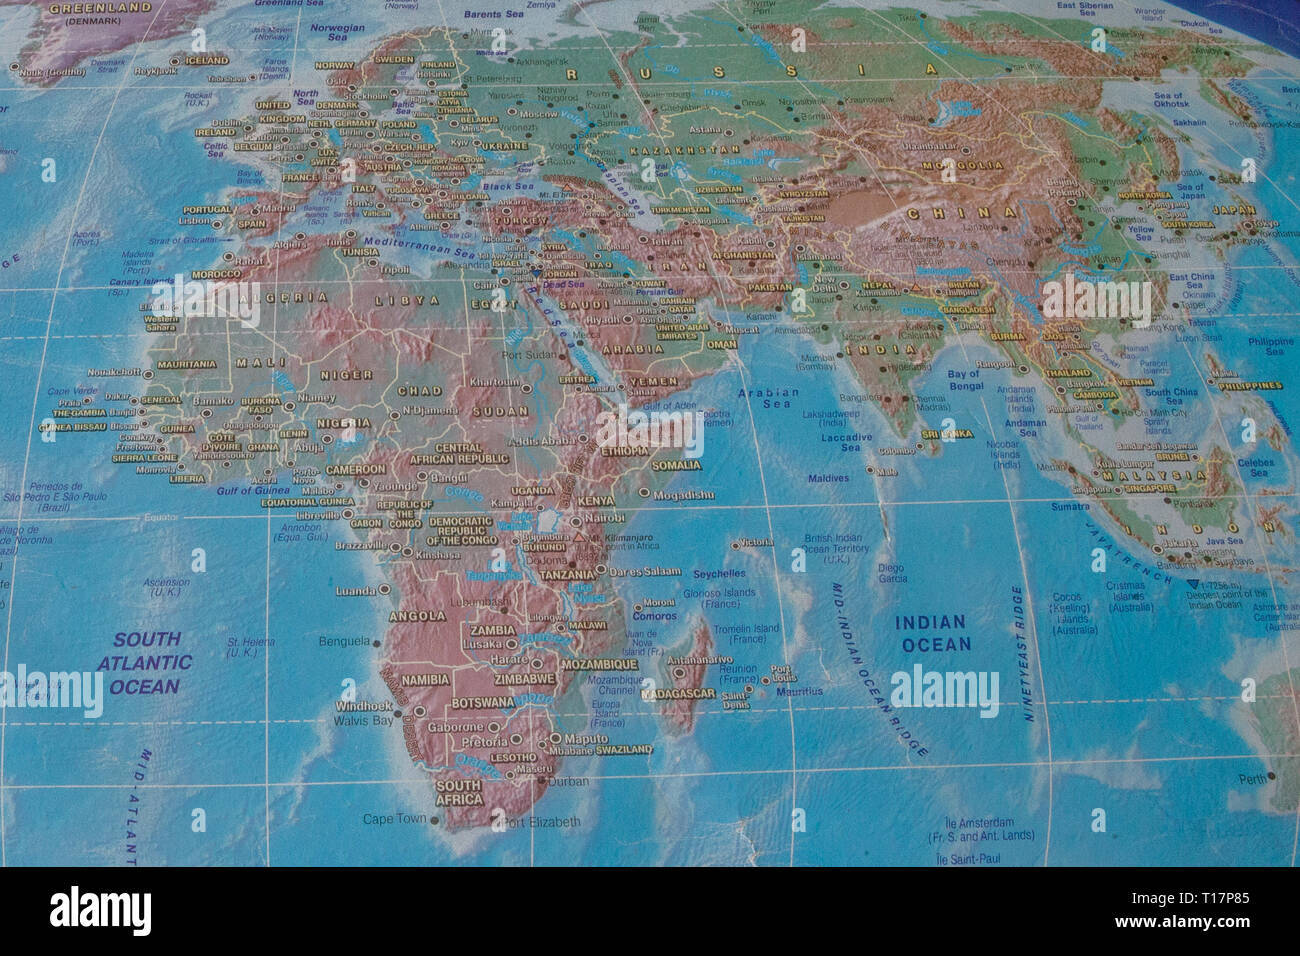 Africa and Eurasia on the map of the world. - Stock Image